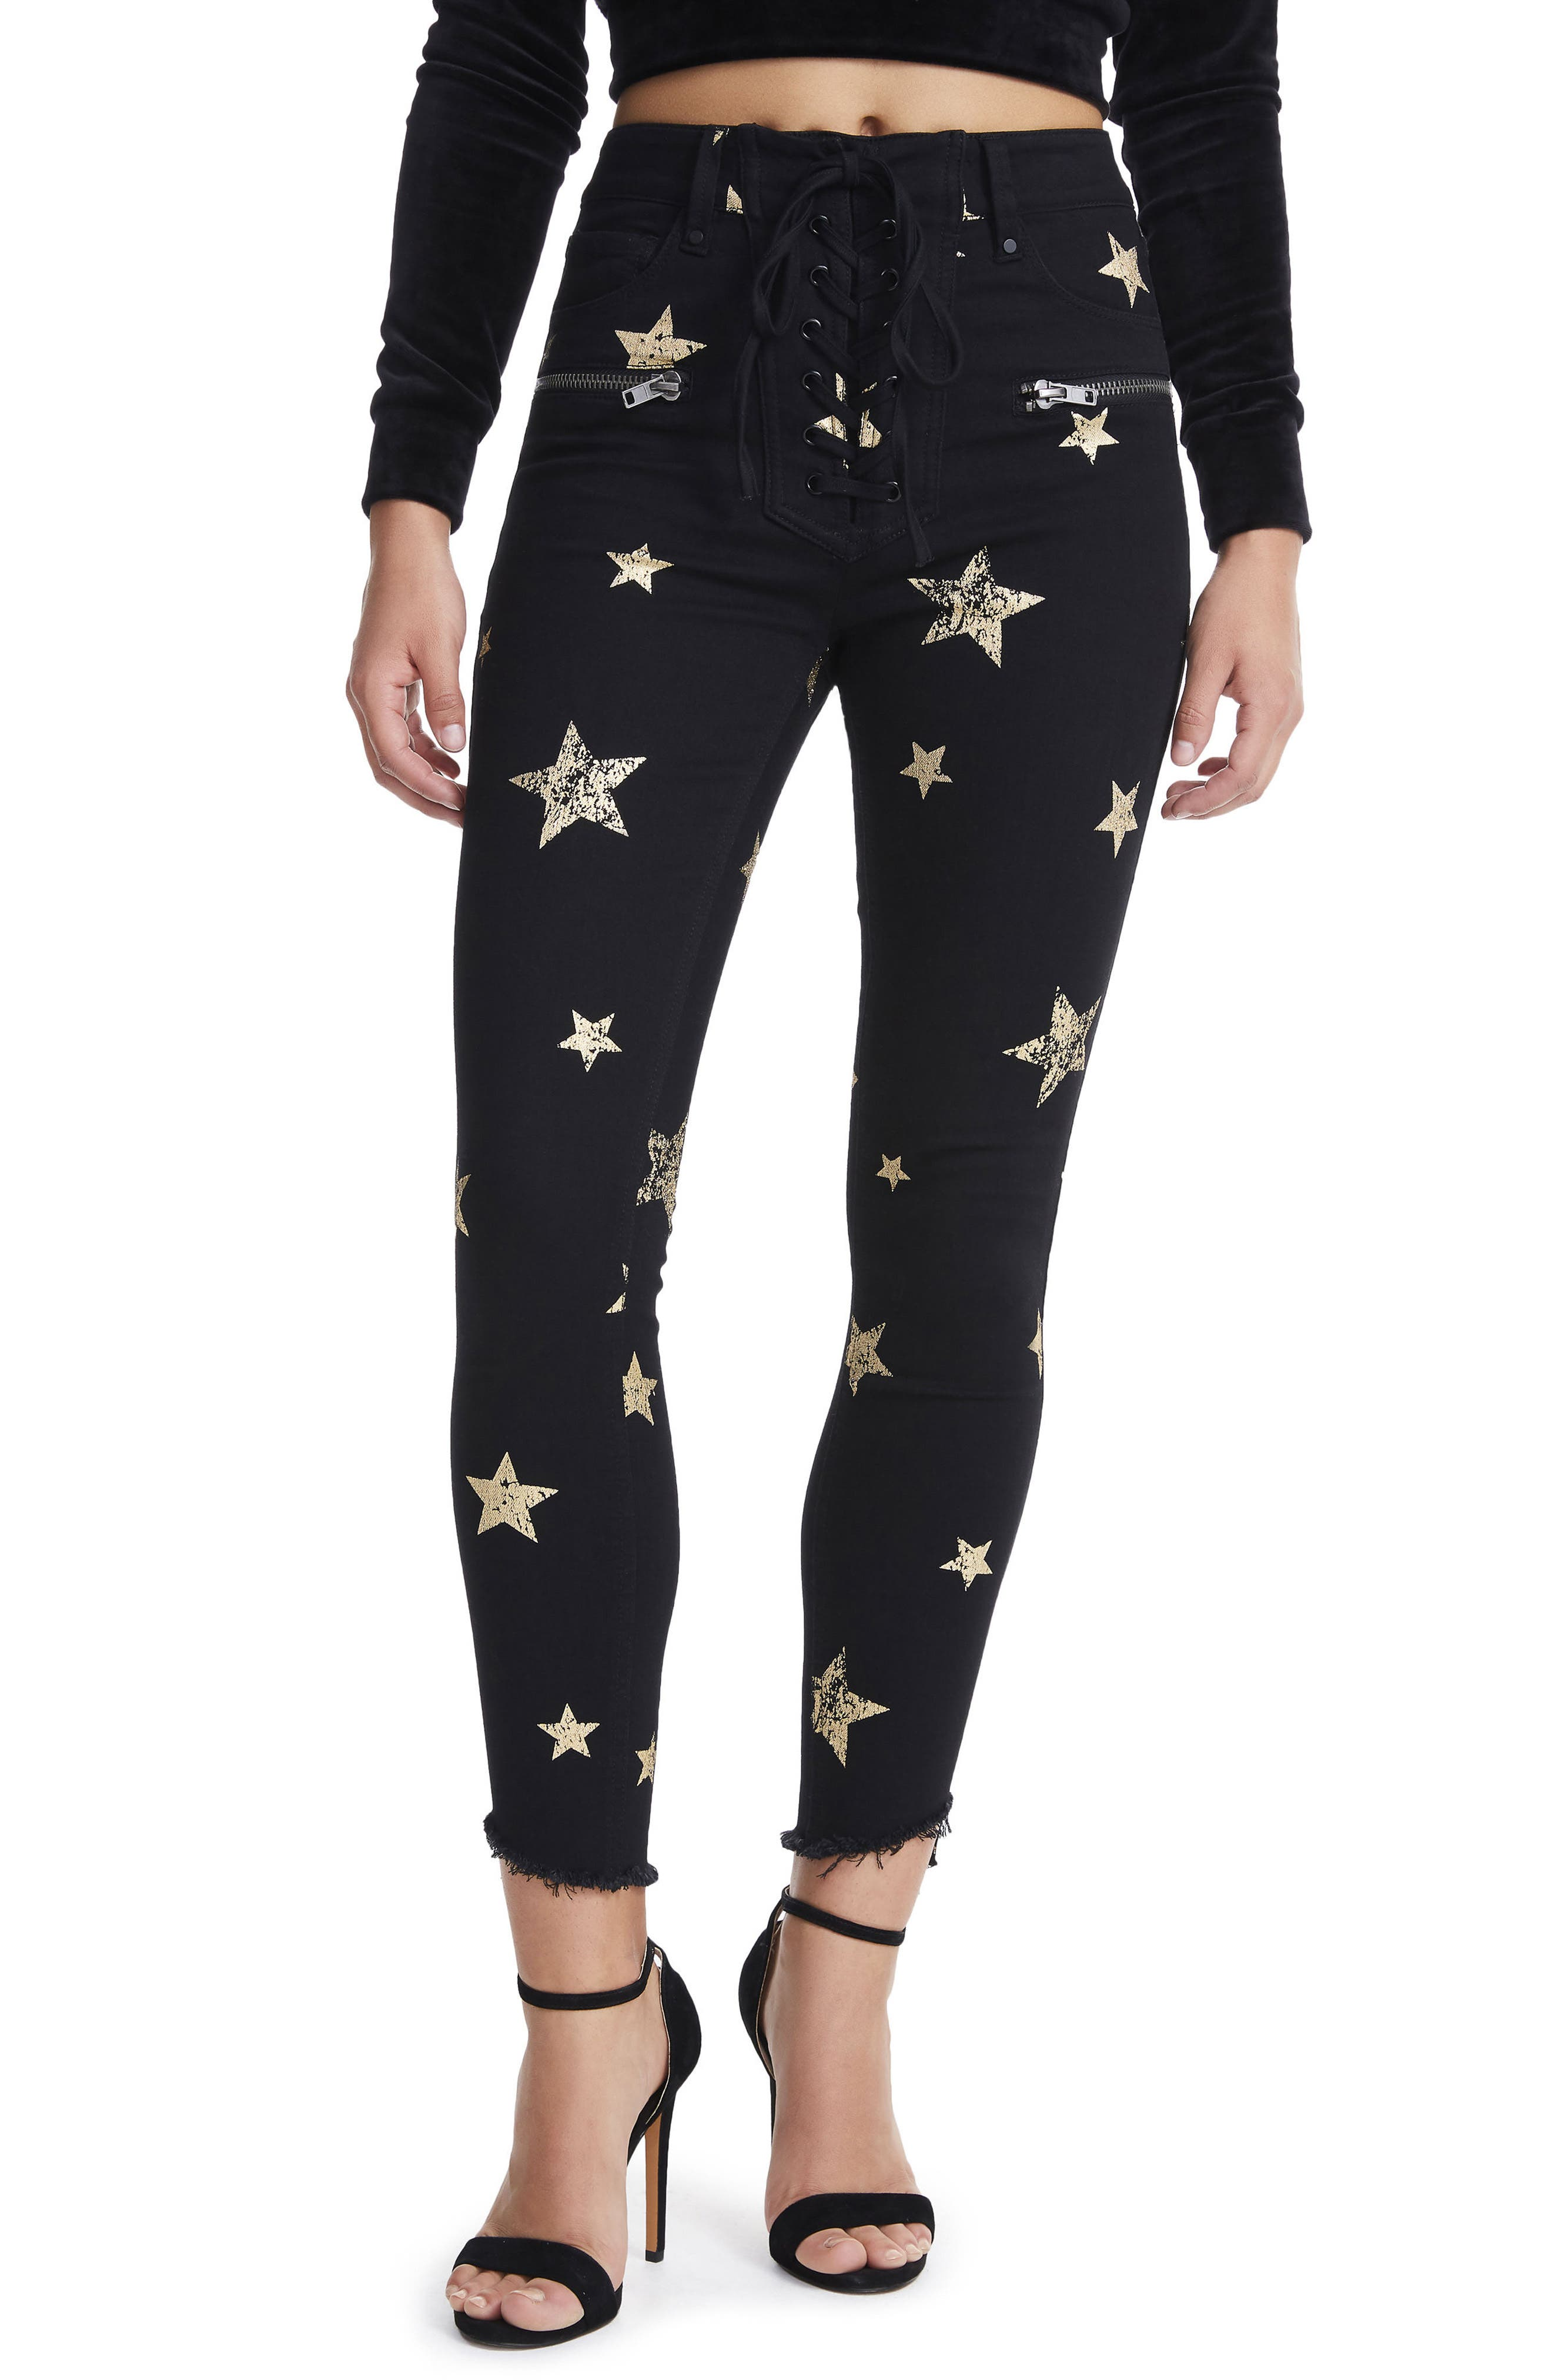 Alternate Image 1 Selected - AFRM Kit Lace-Up High Waist Ankle Skinny Jeans (Rock Star)